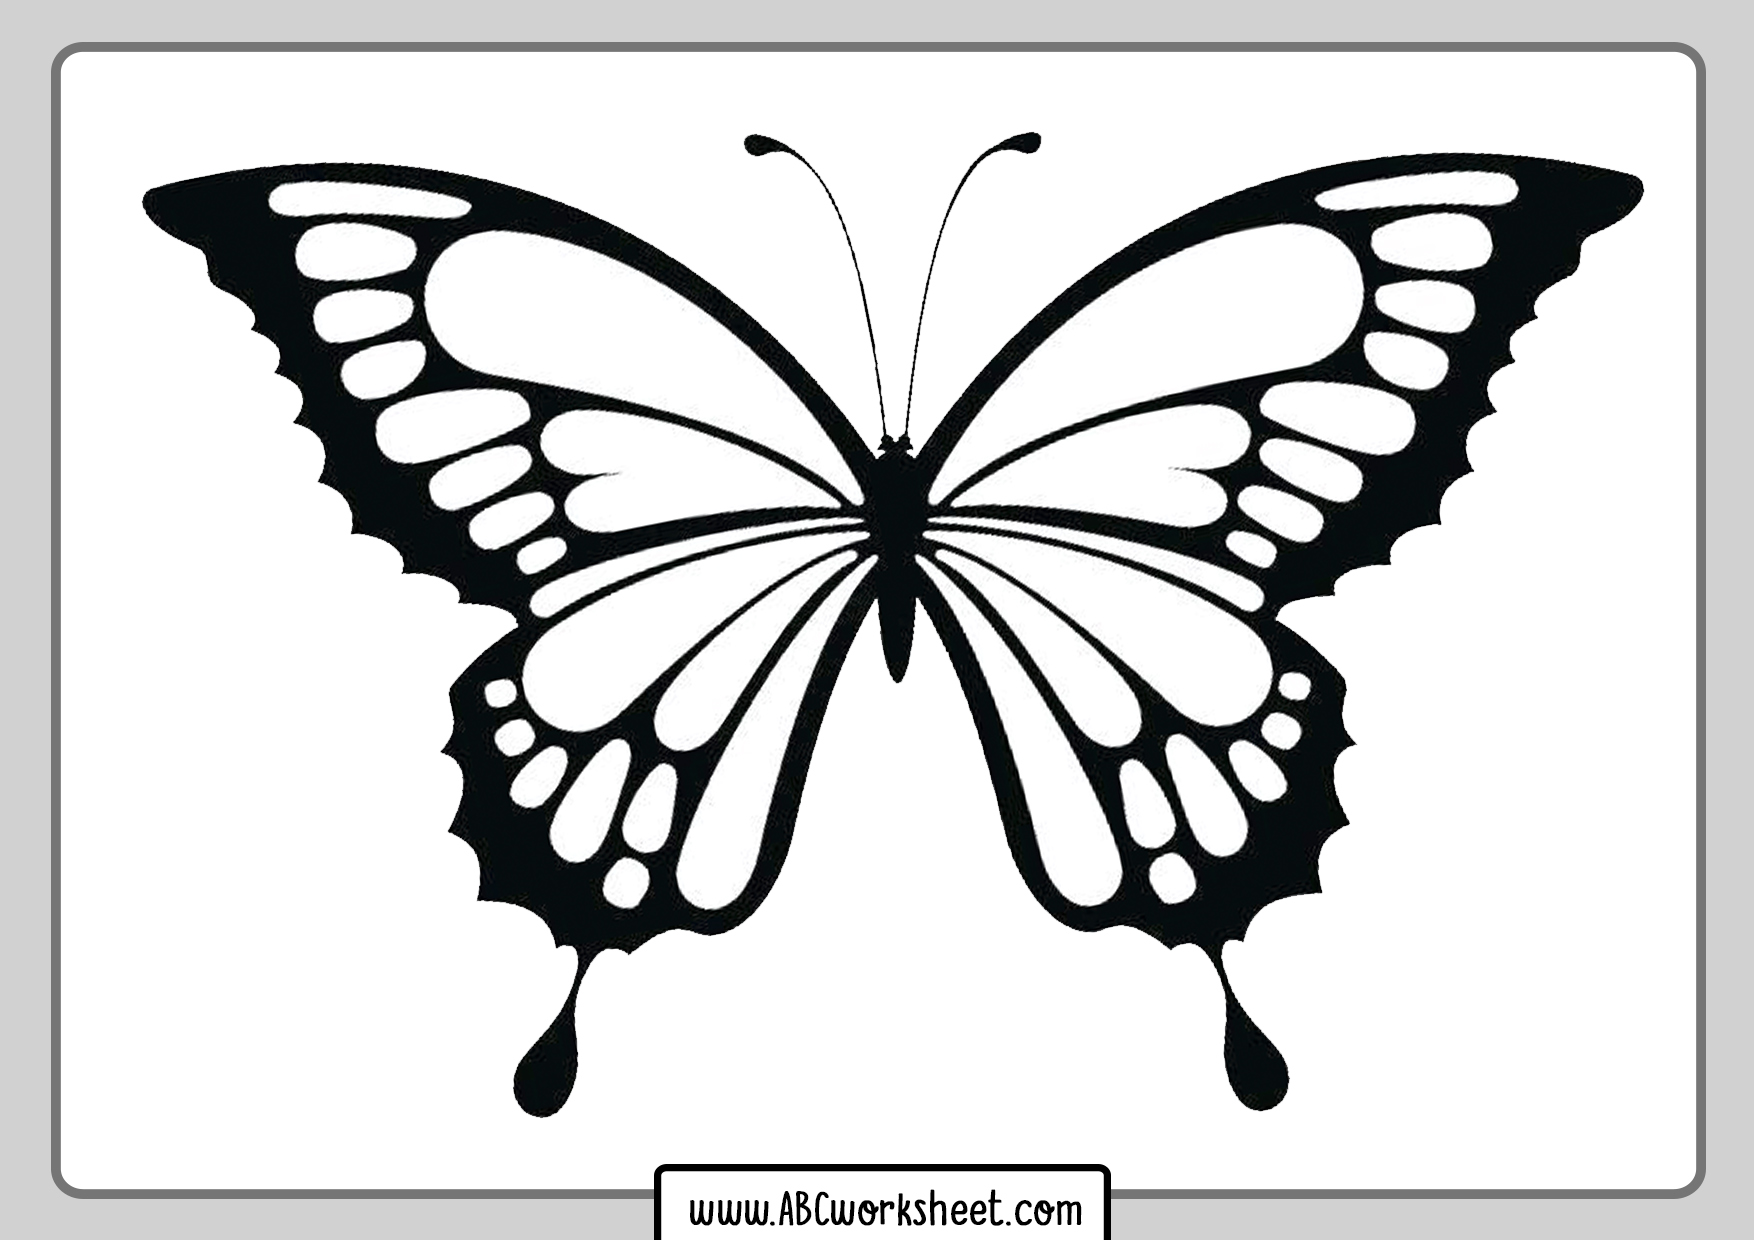 Printable Butterly Coloring Pages